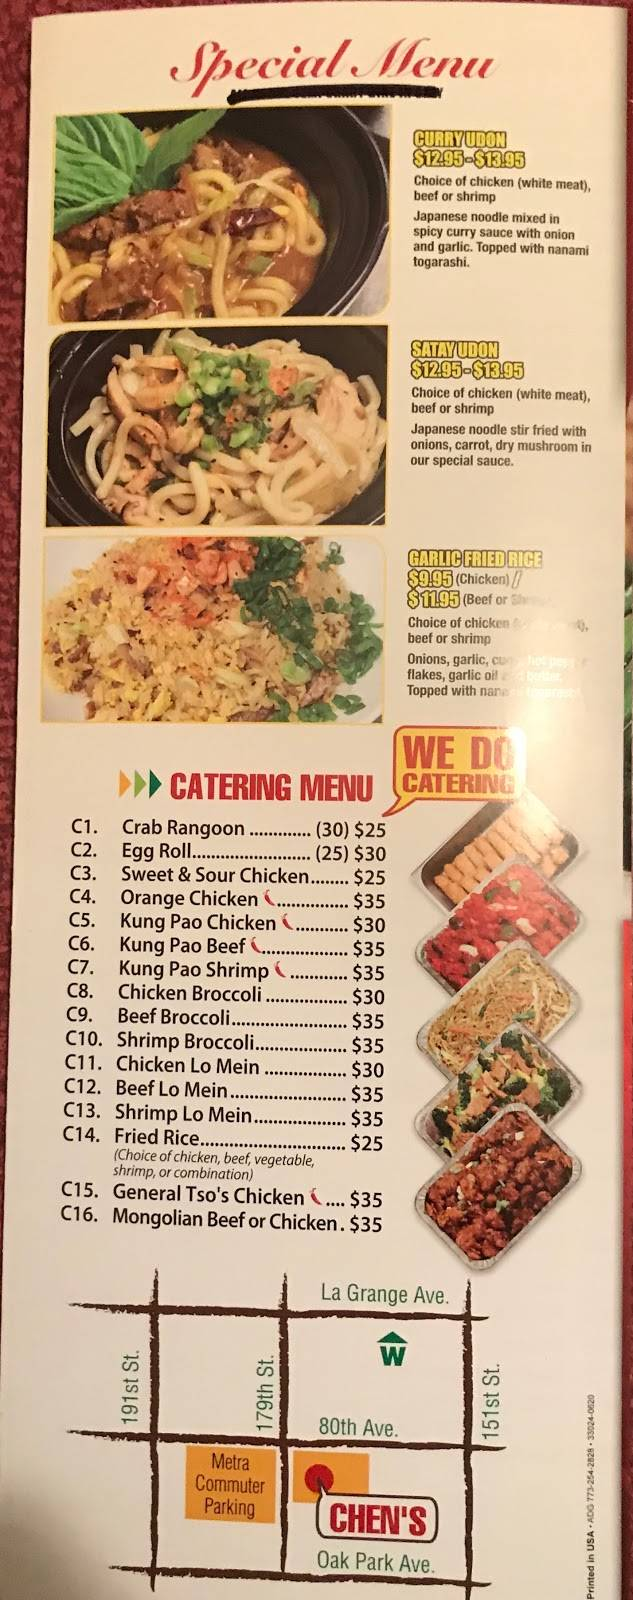 Chens | restaurant | 17855 80th Ave, Tinley Park, IL 60477, USA | 7086140689 OR +1 708-614-0689